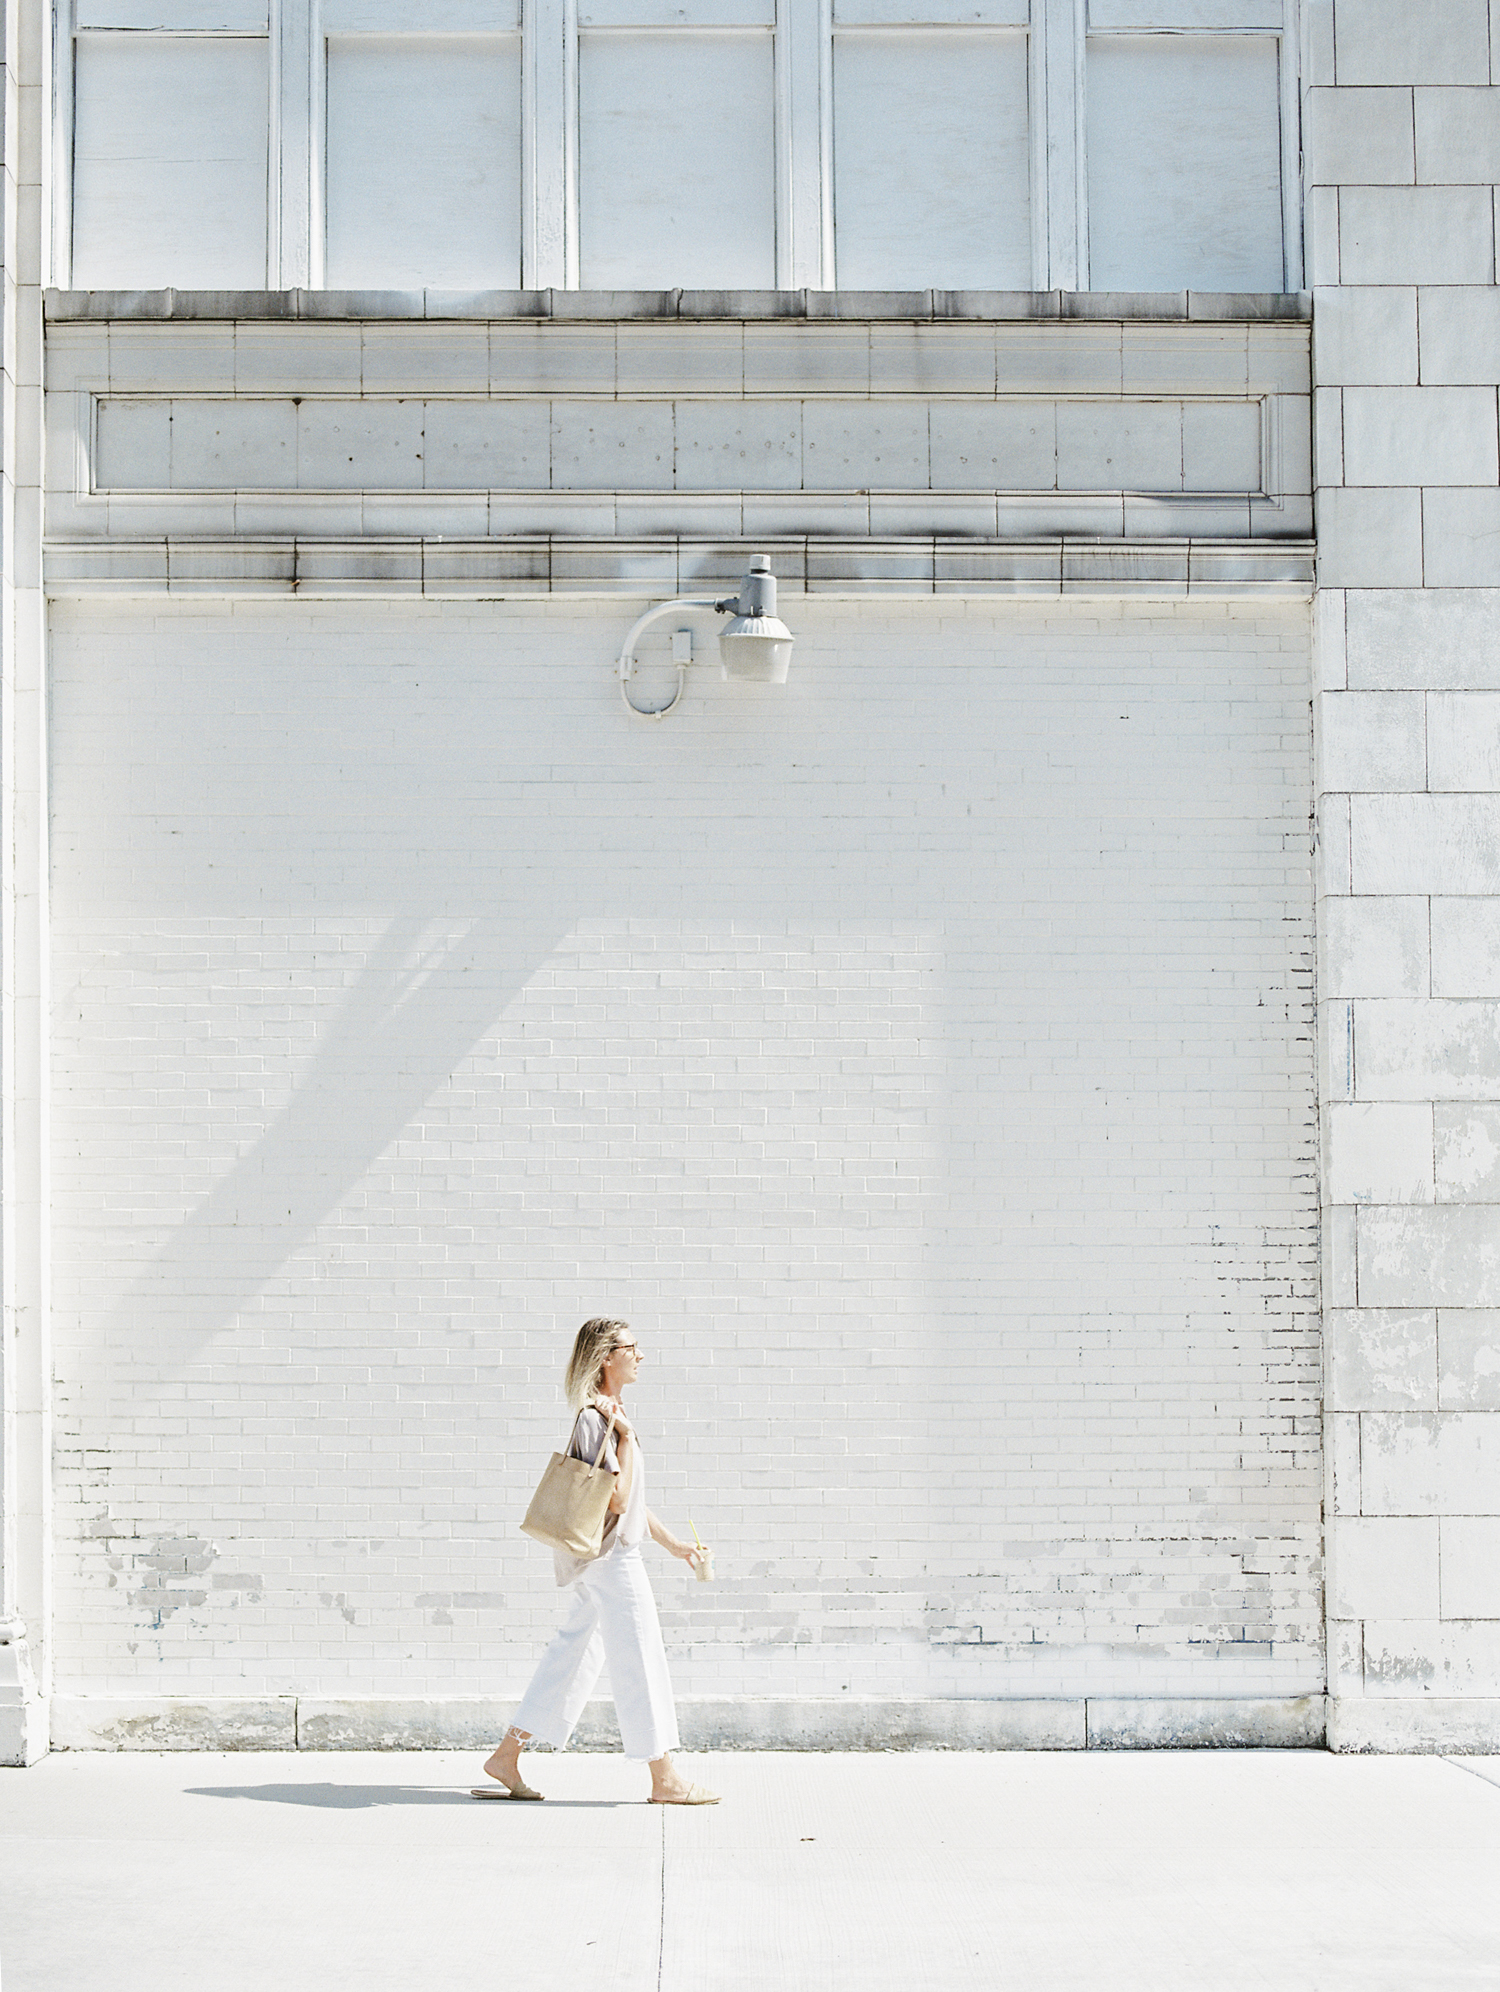 A designer walks along a white distressed brick building in Detroit during her creative brand photo shoot on film